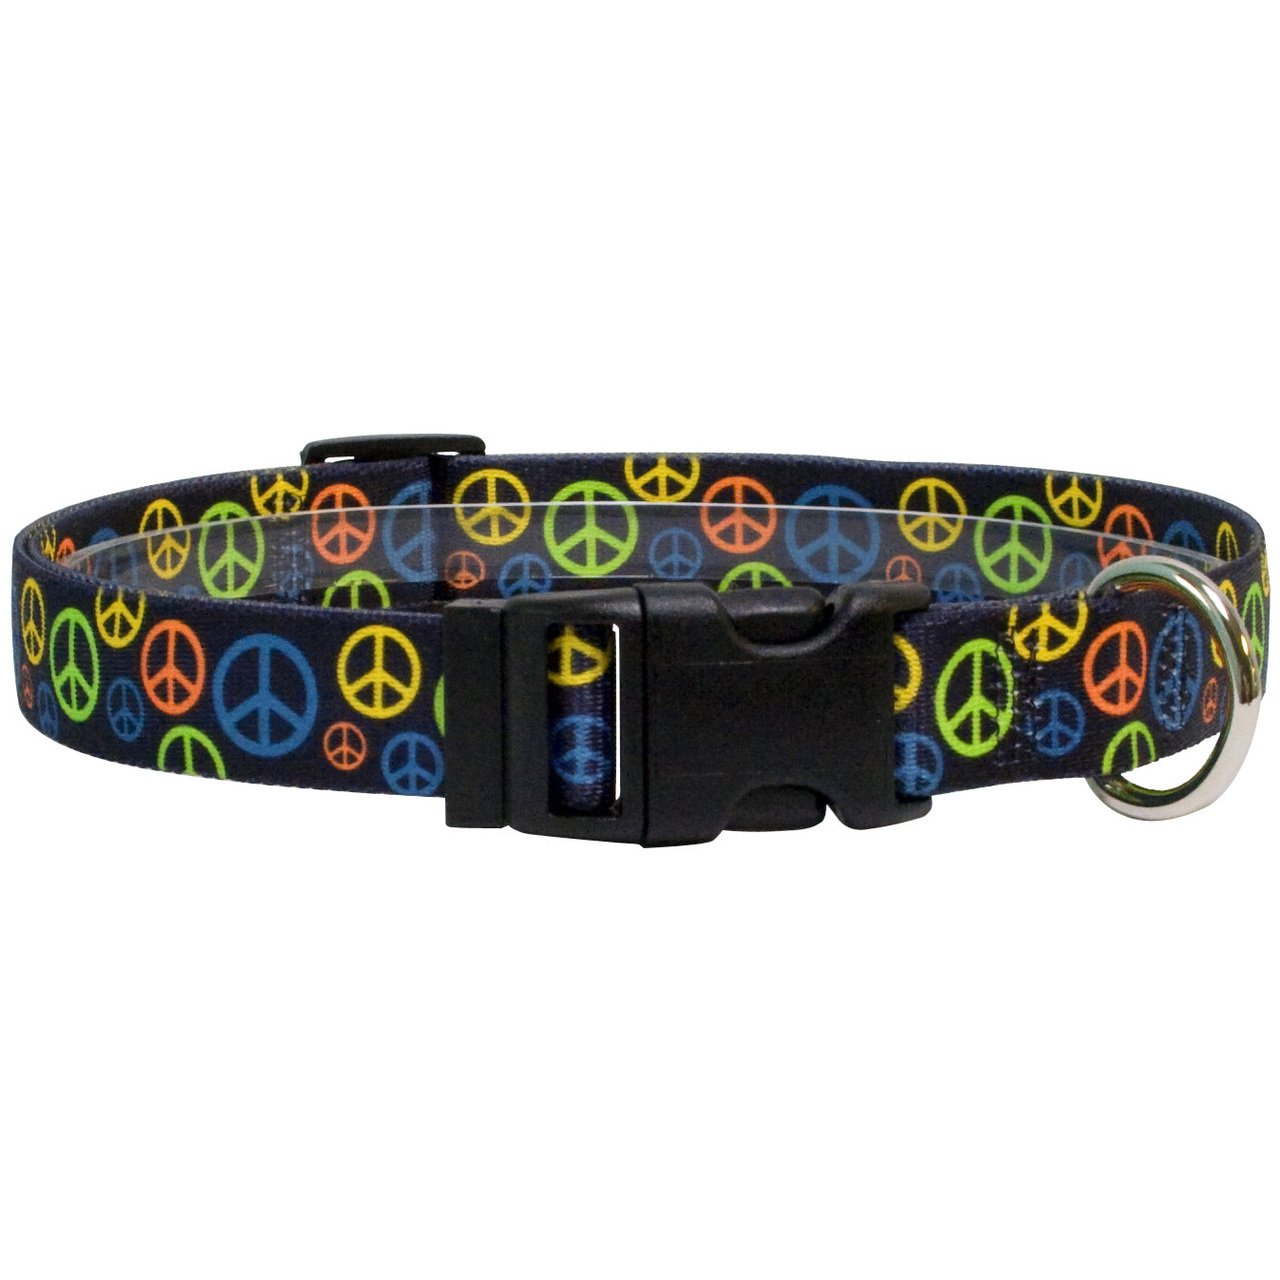 Yellow Dog Design Neon Peace Signs Dog Collar, Medium-1'' wide fits neck sizes 14 to 20'' wide